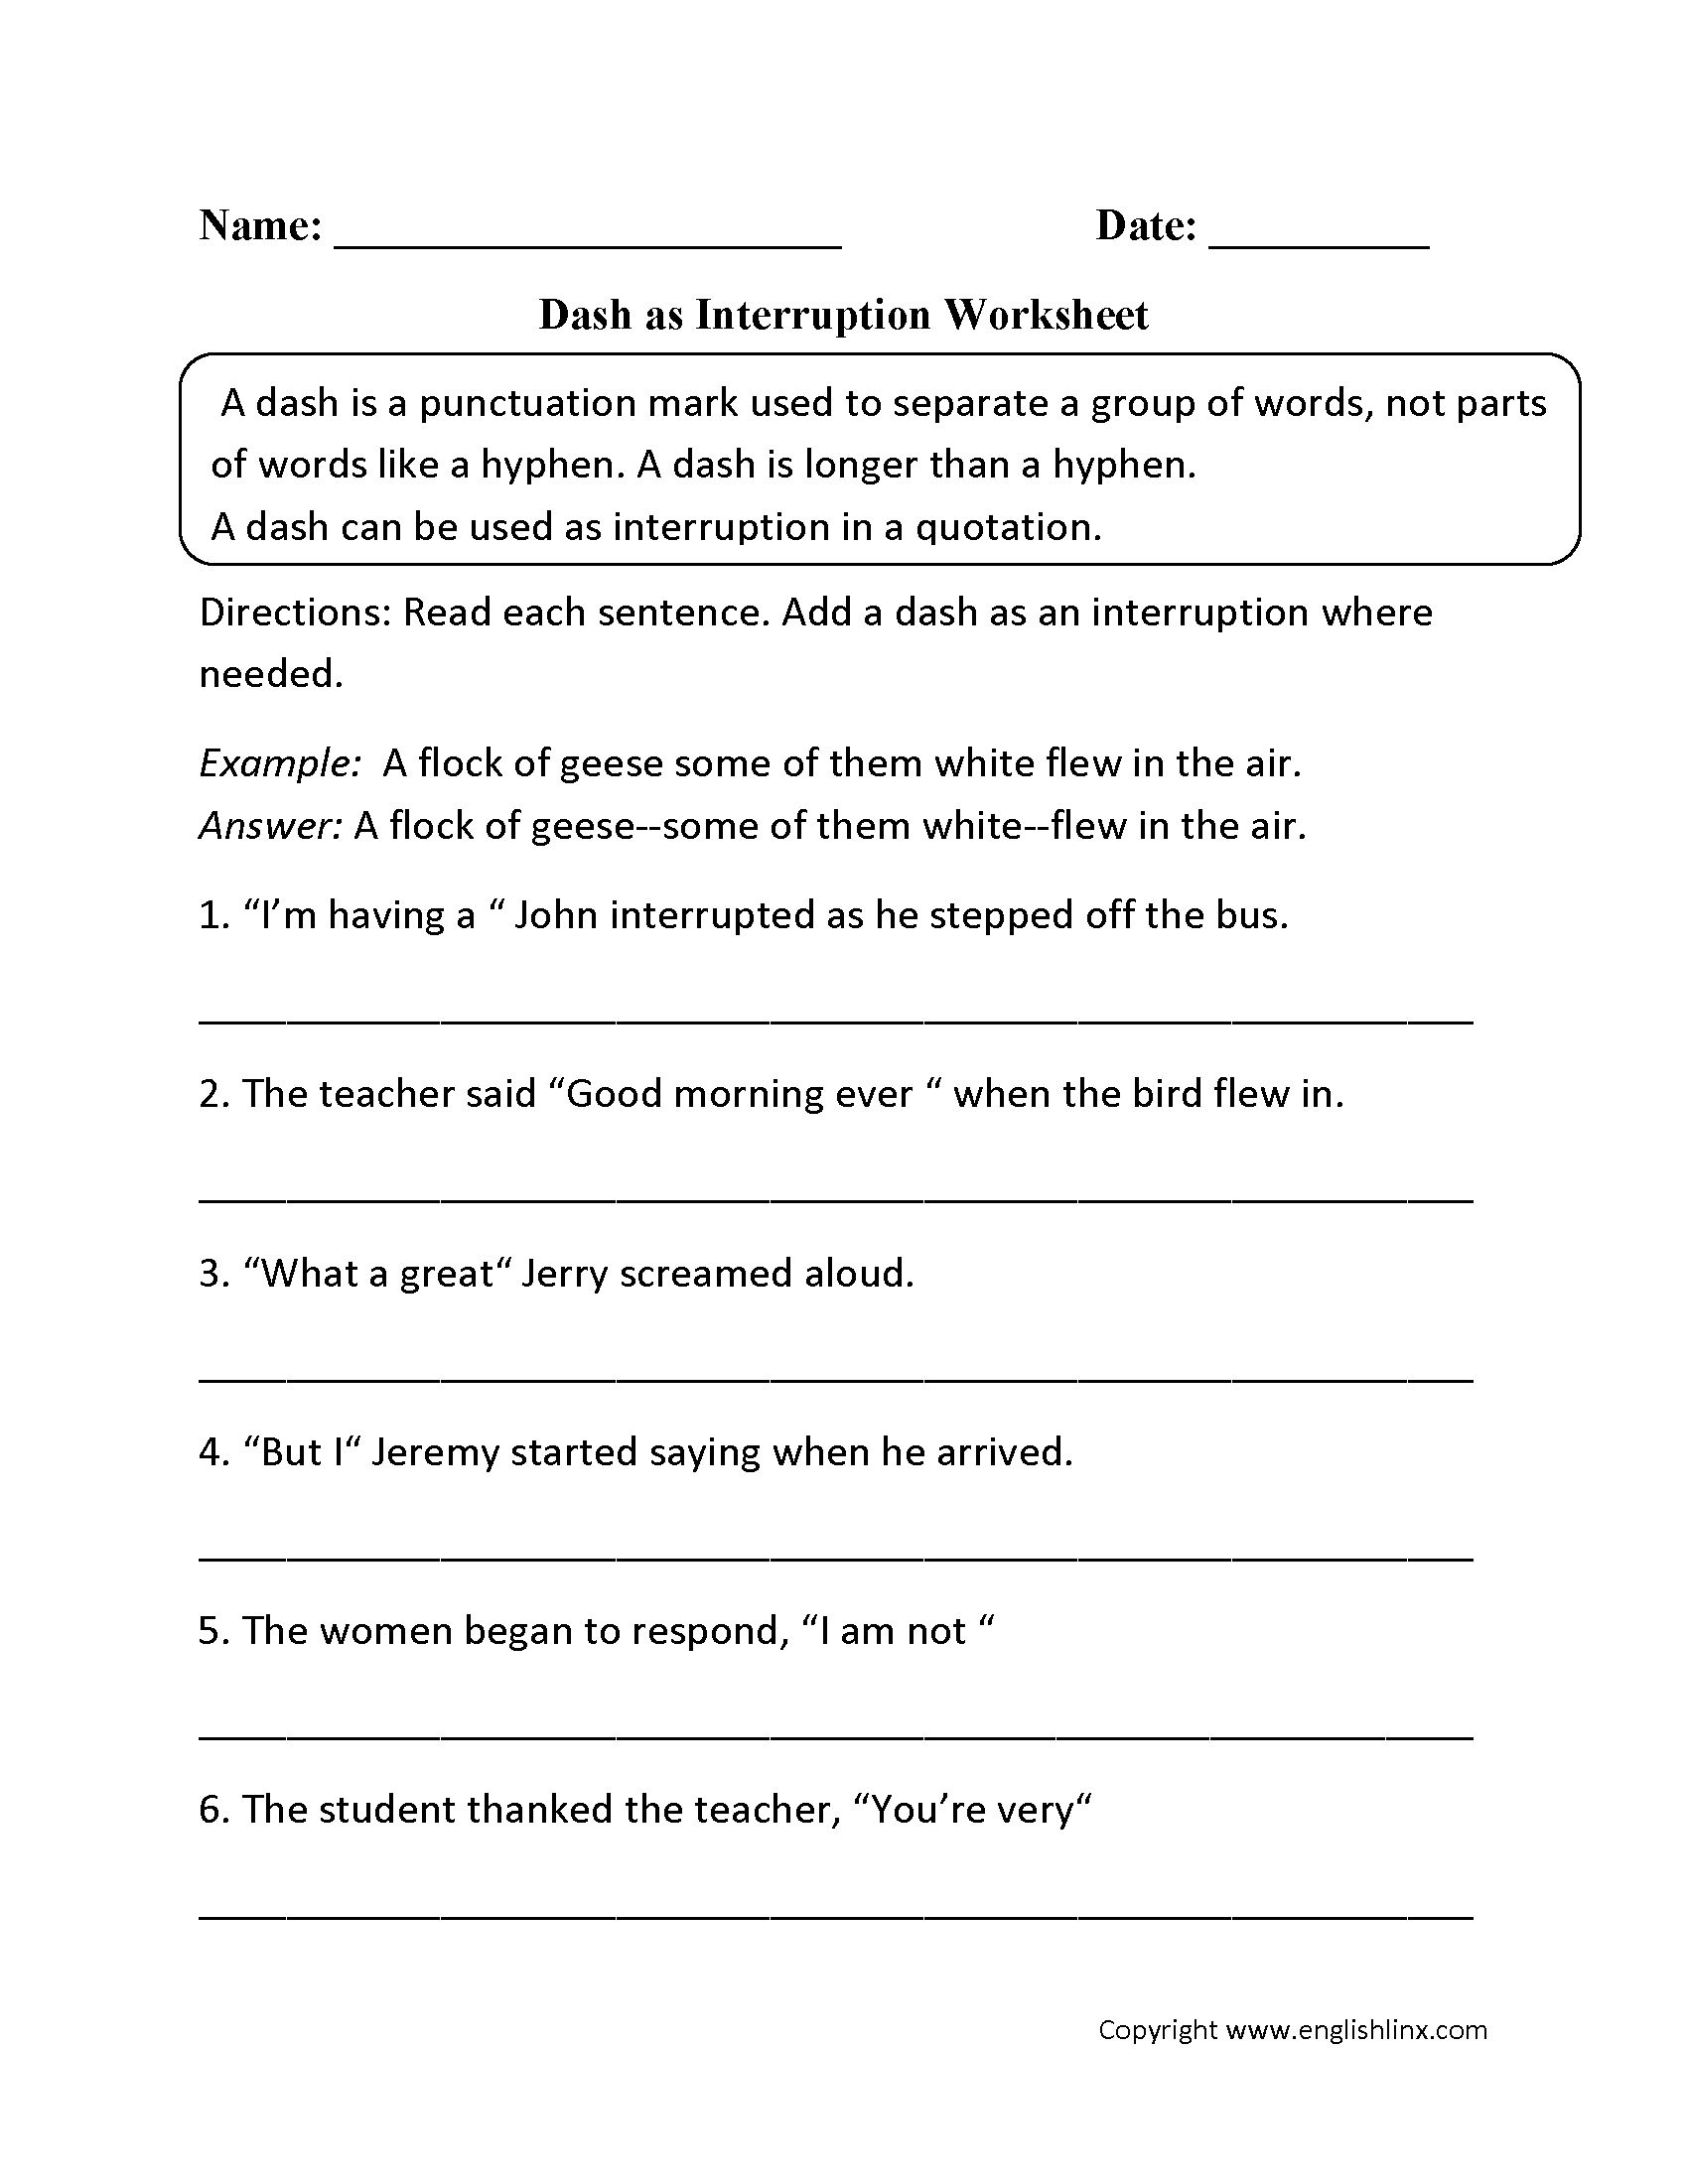 33 Colon Worksheet High School Worksheet Project List Determine whether the clauses need to be joined with commas or semicolons. 33 colon worksheet high school